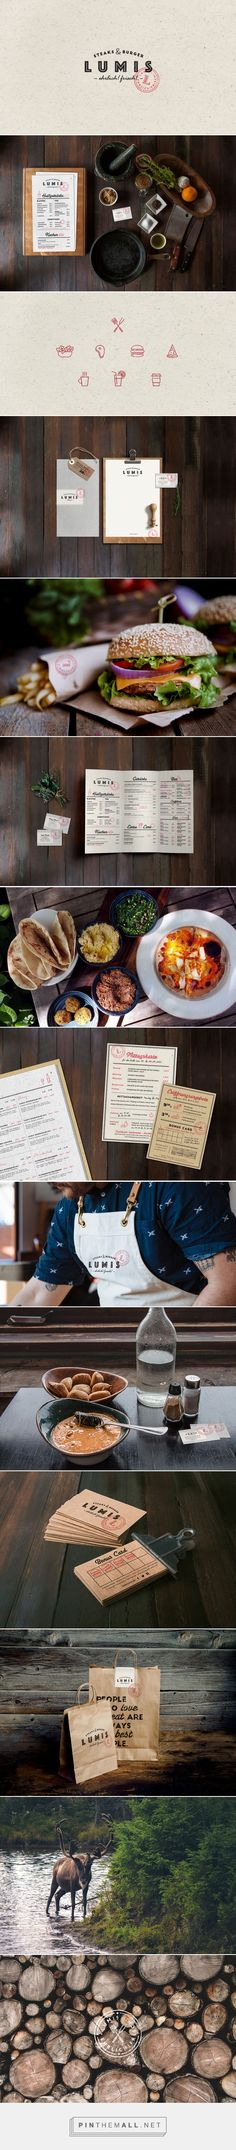 Lumis Restaurant Branding and Menu Design by Daria Po | Fivestar Branding Agency – Design and Branding Agency & Curated Inspiration Gallery